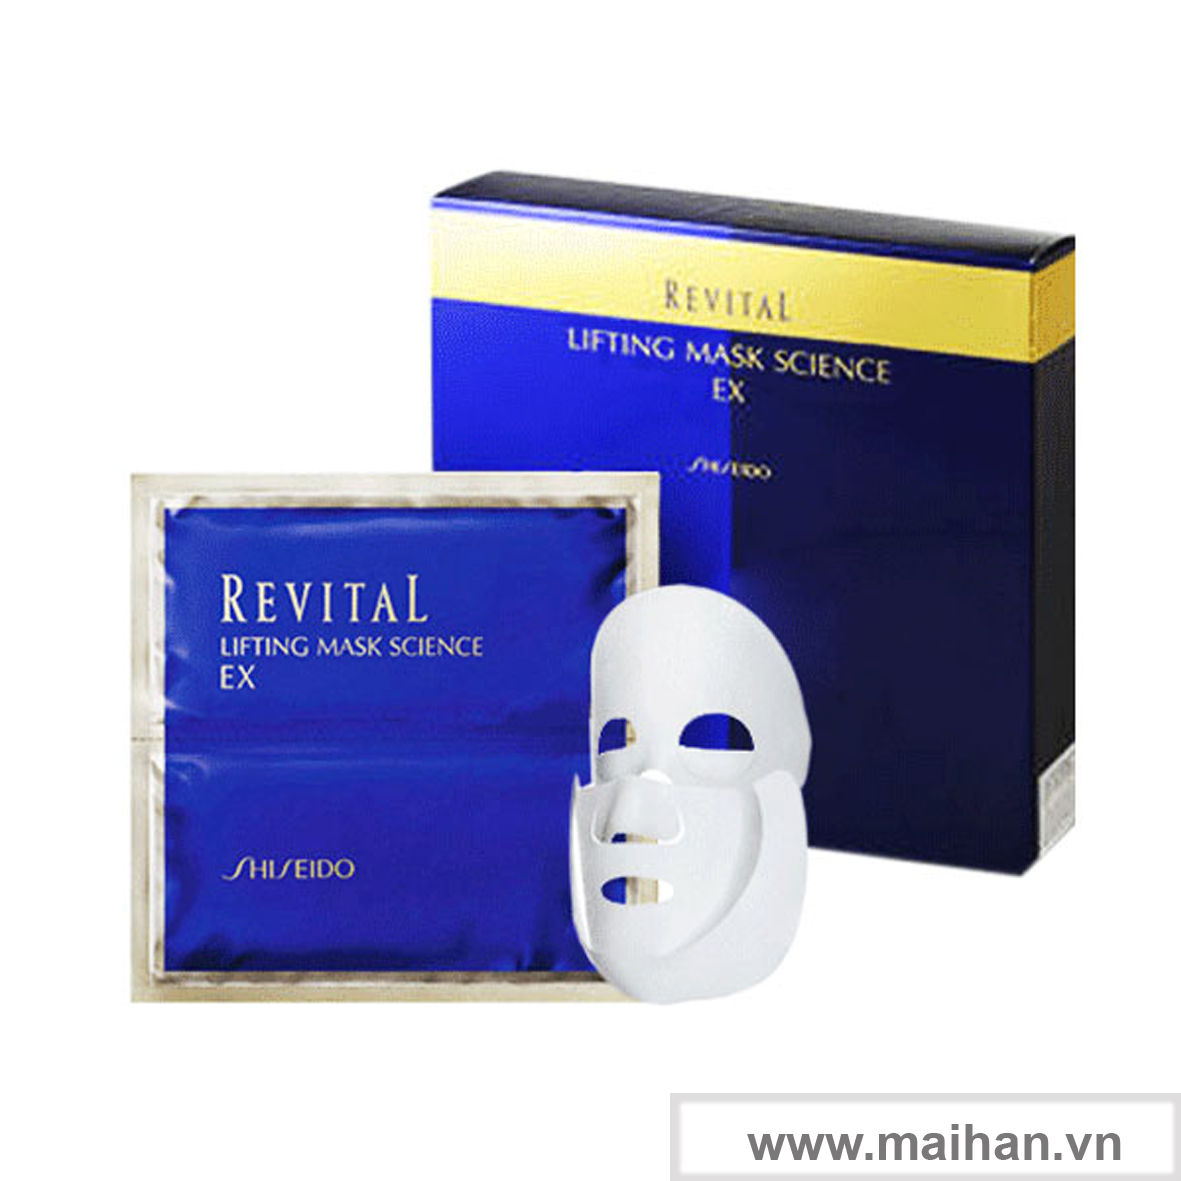 Mặt nạ Shiseido Revital Lifting Mask Science EX